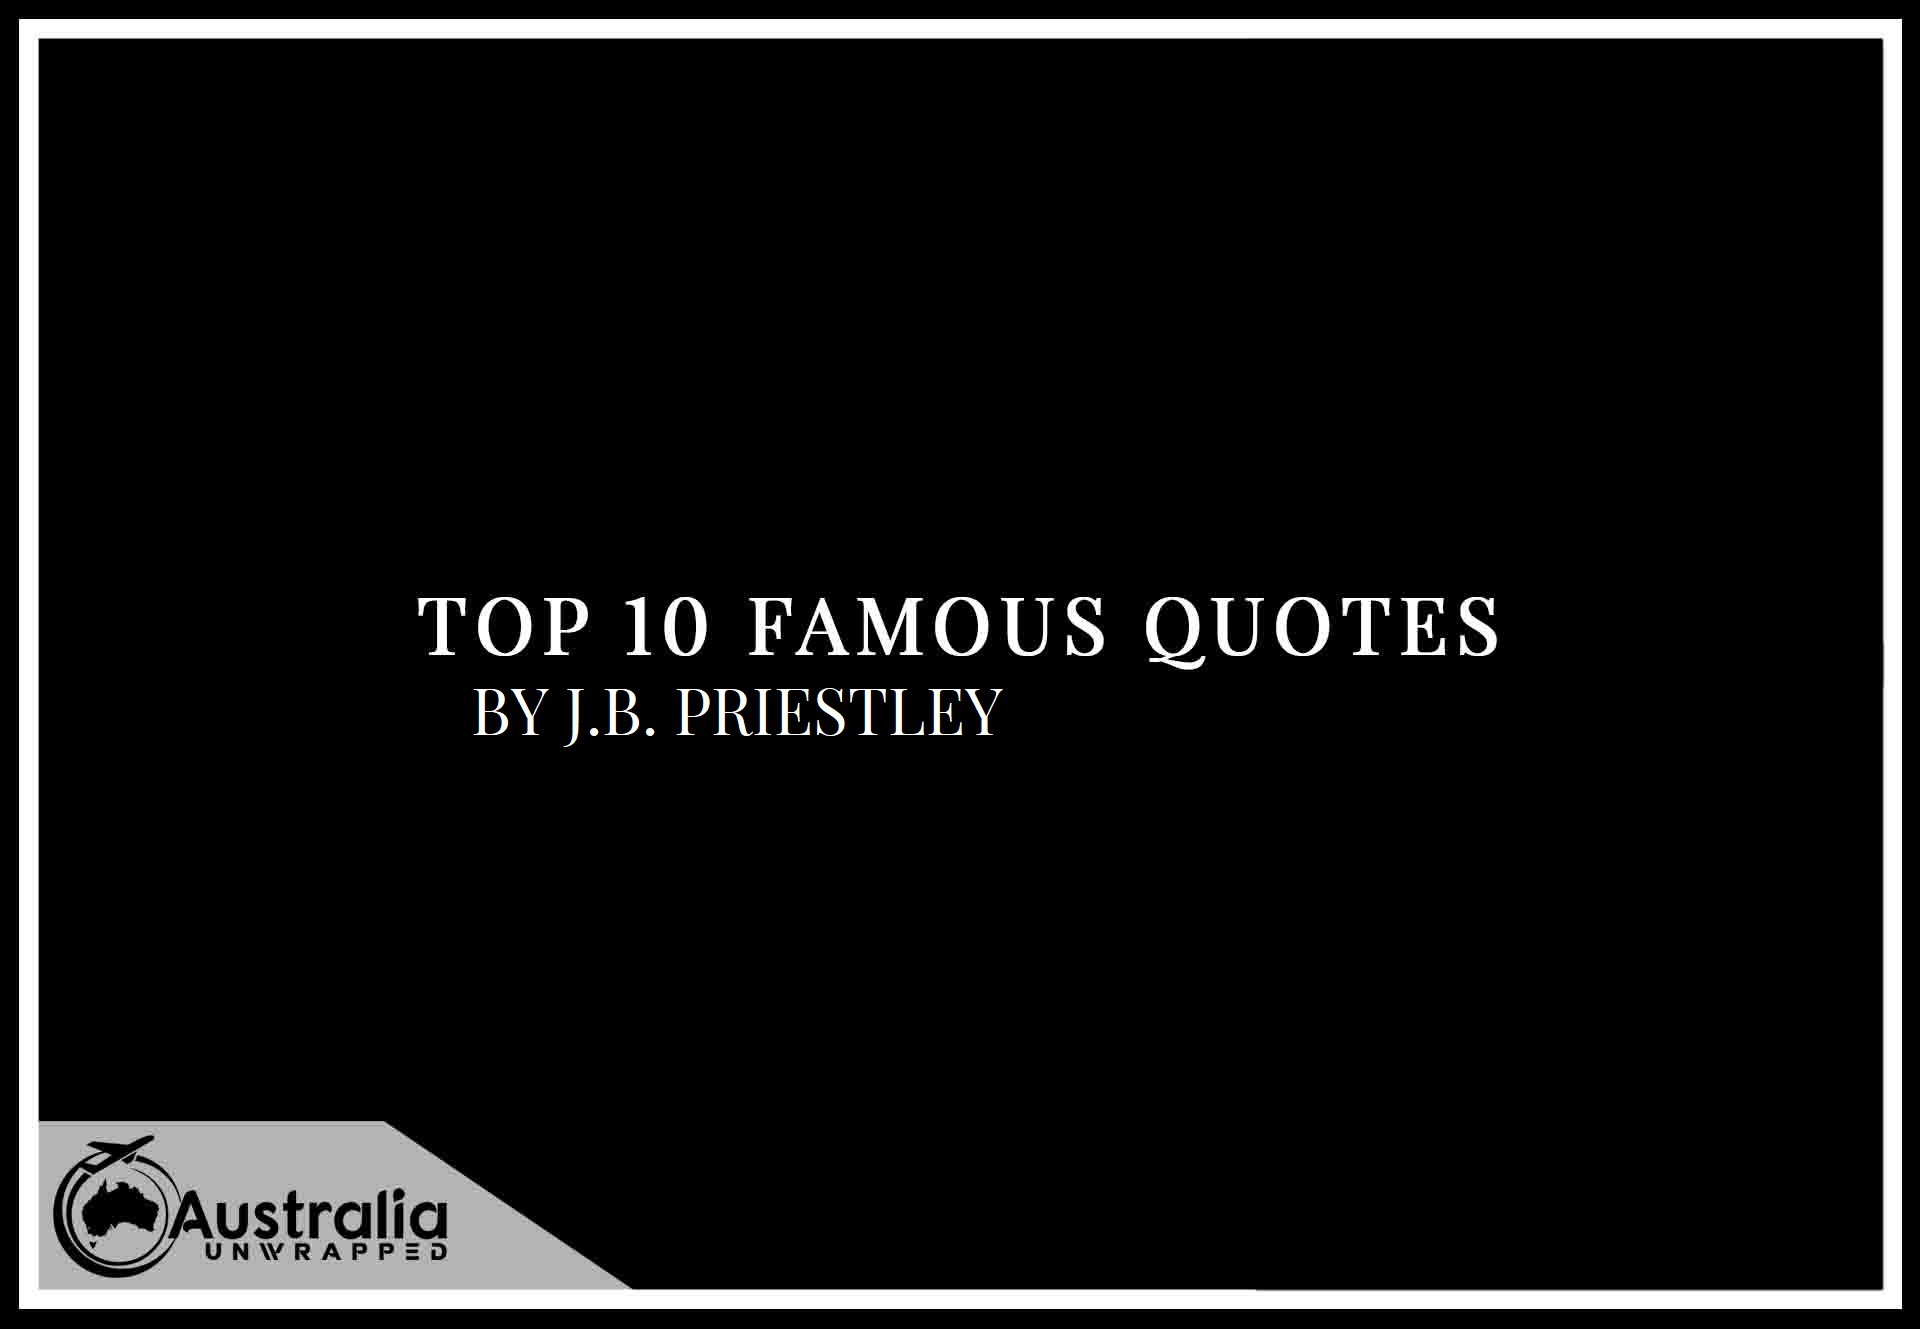 Top 10 Famous Quotes by Author J.B. Priestley